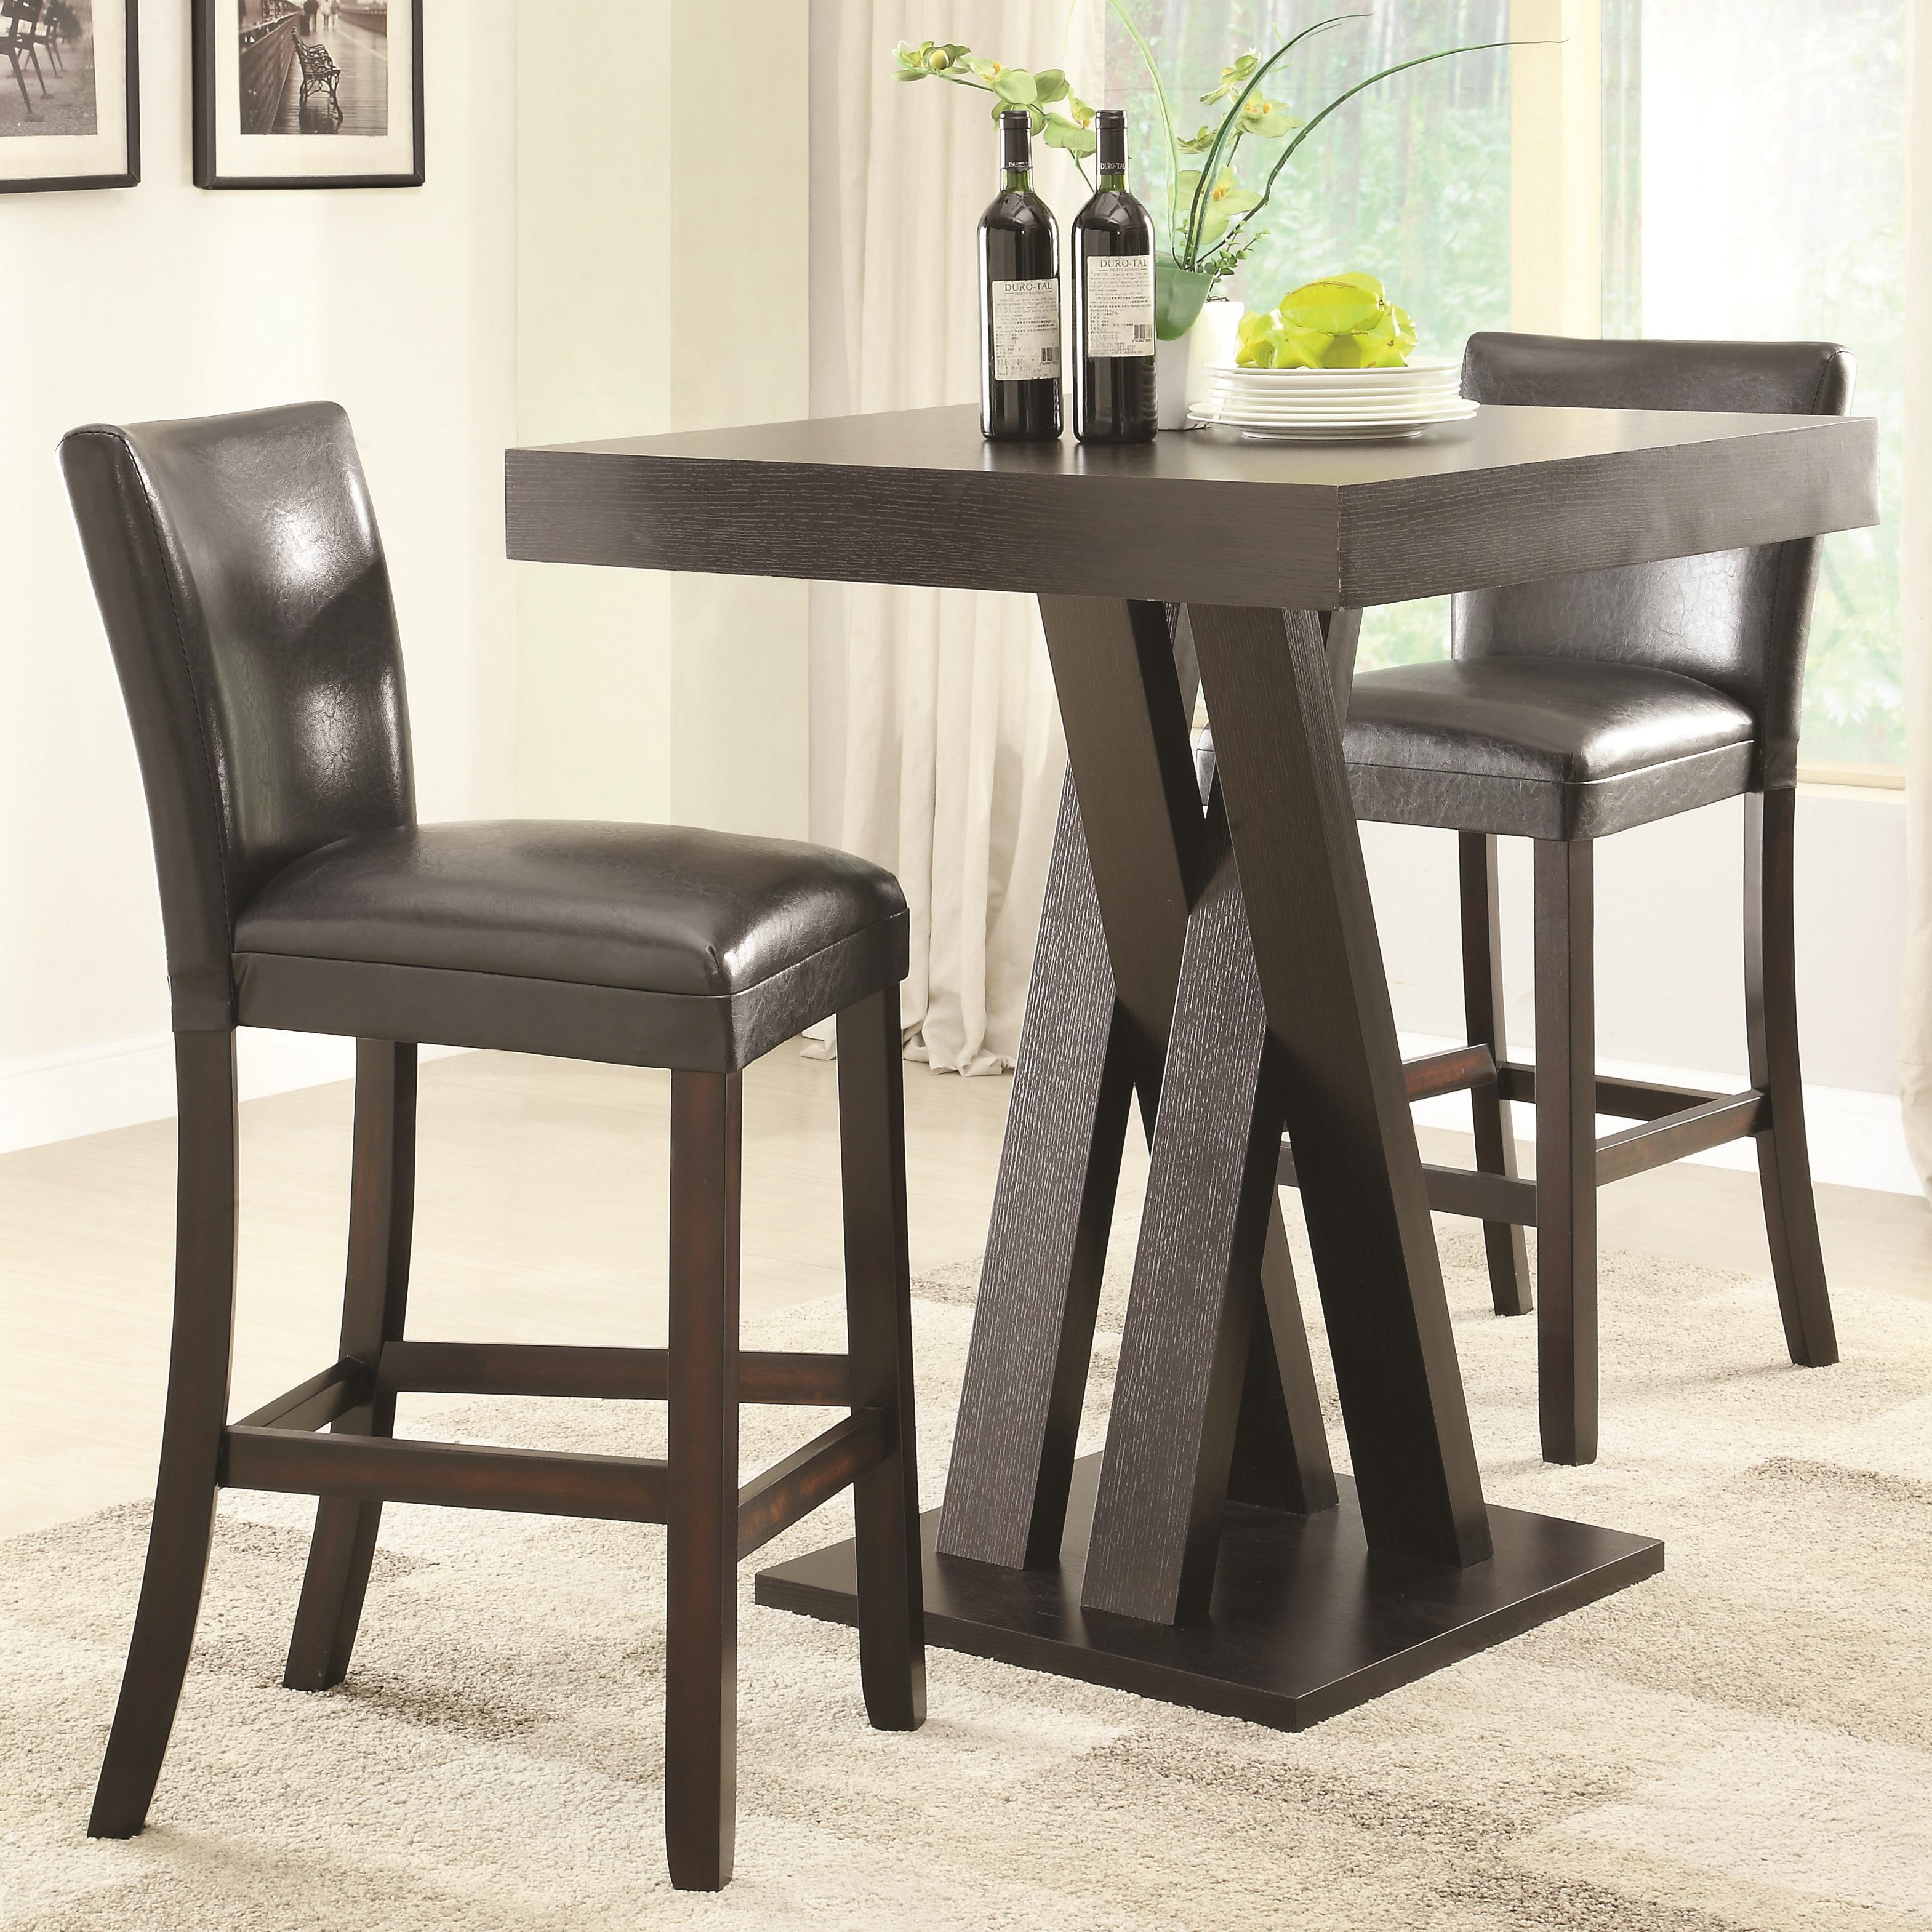 Bar Stools And Table Set Coaster Bar Units And Bar Tables 3 Pc Bar Height Table And